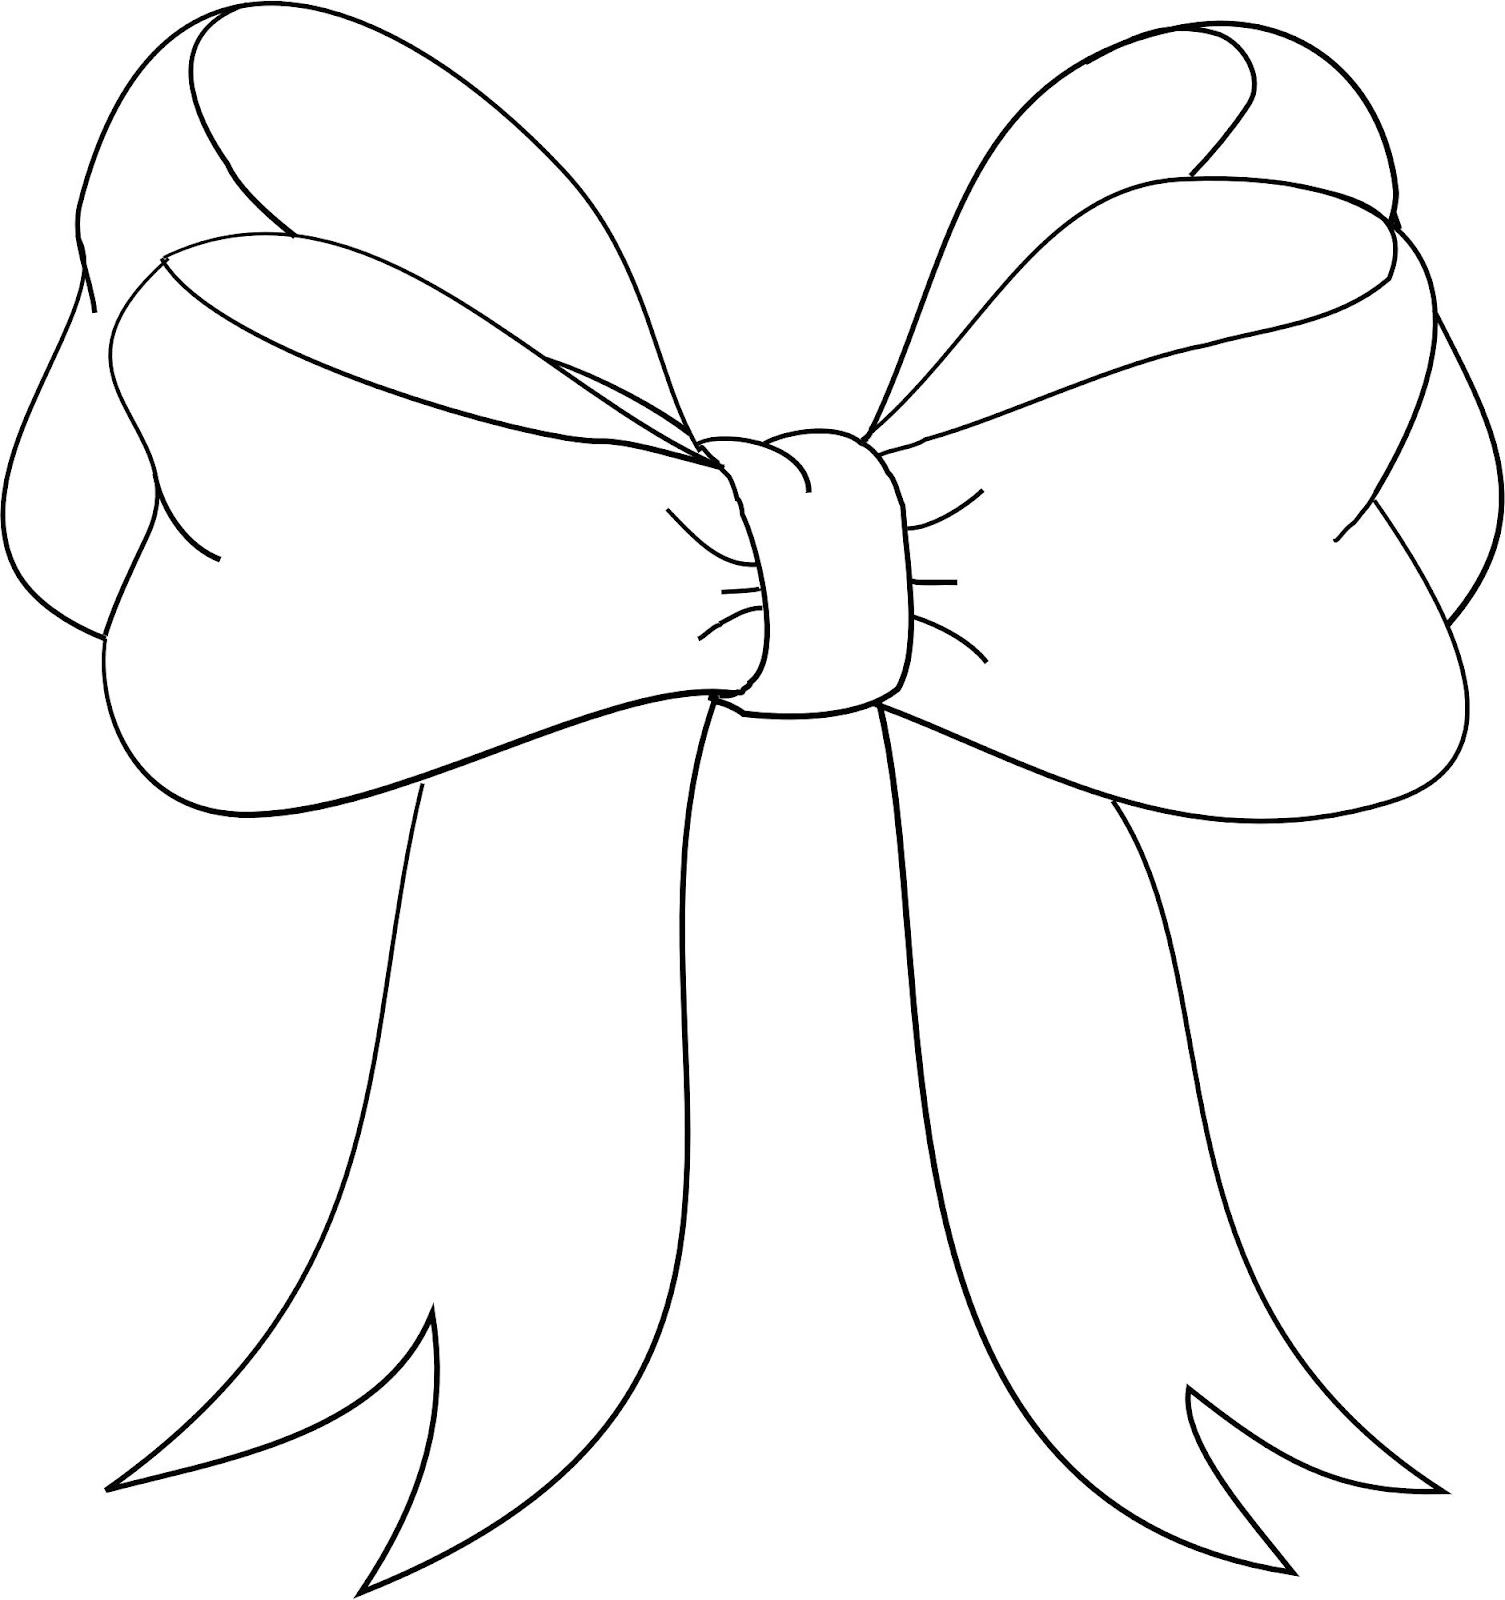 Superb Suggestions Online Images Of Cheer Bow Outline Short Hairstyles Gunalazisus